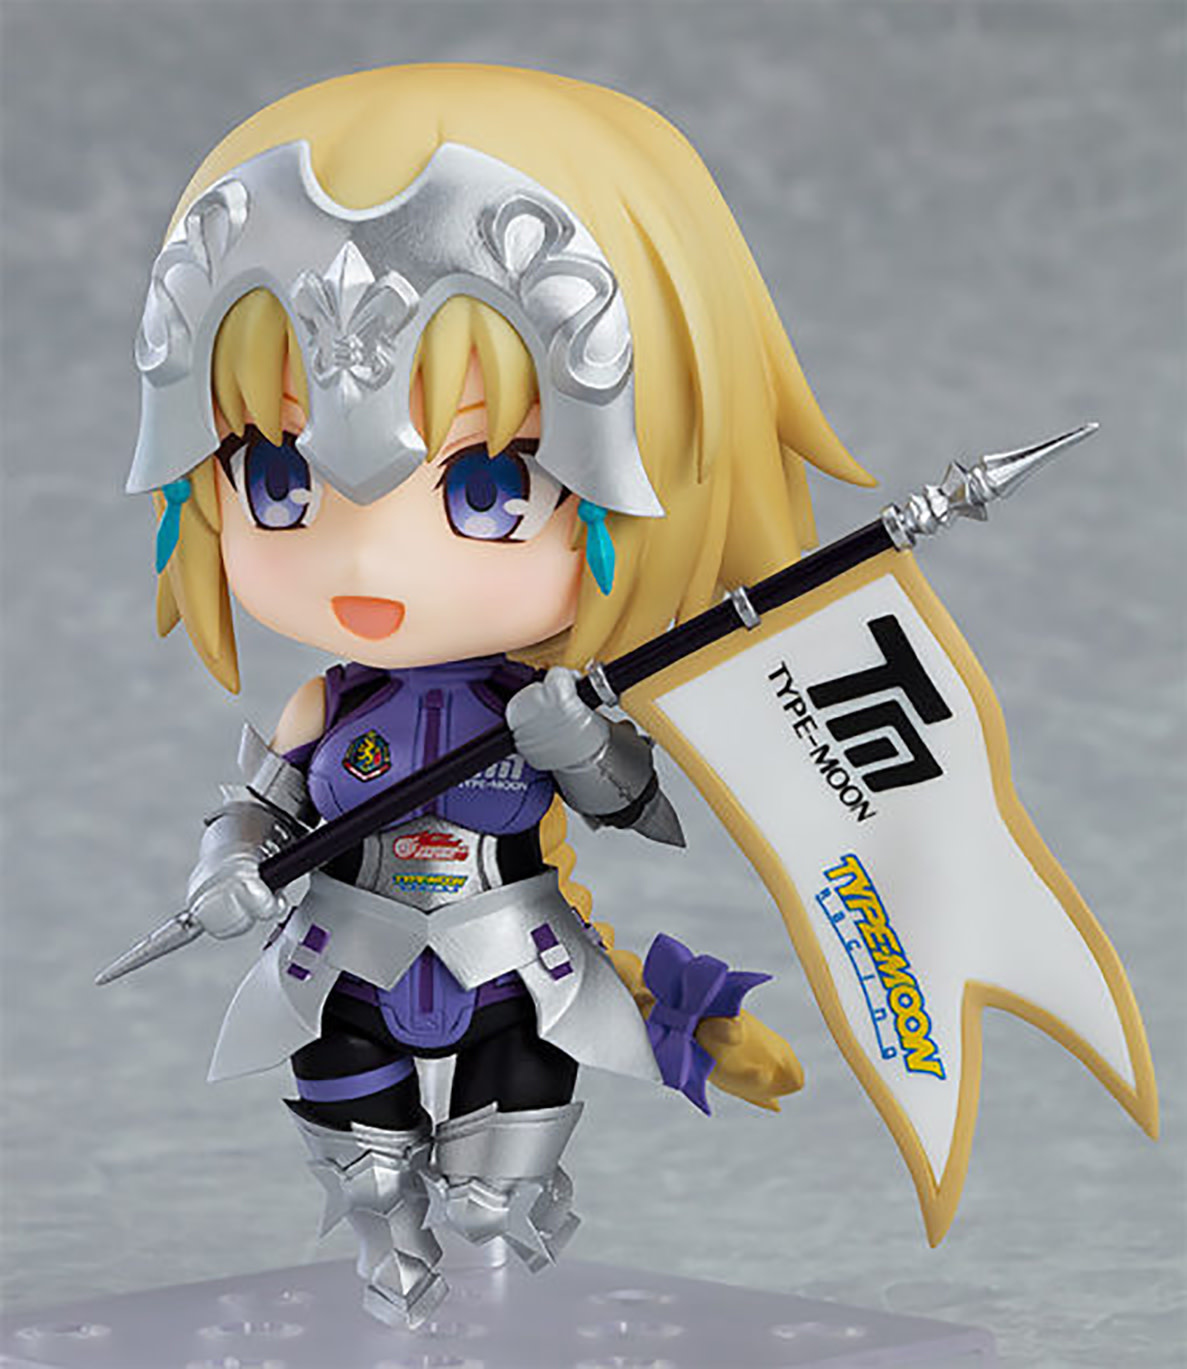 Good Smile Company Jeanne d'Arc: Racing Ver. Nendoroid